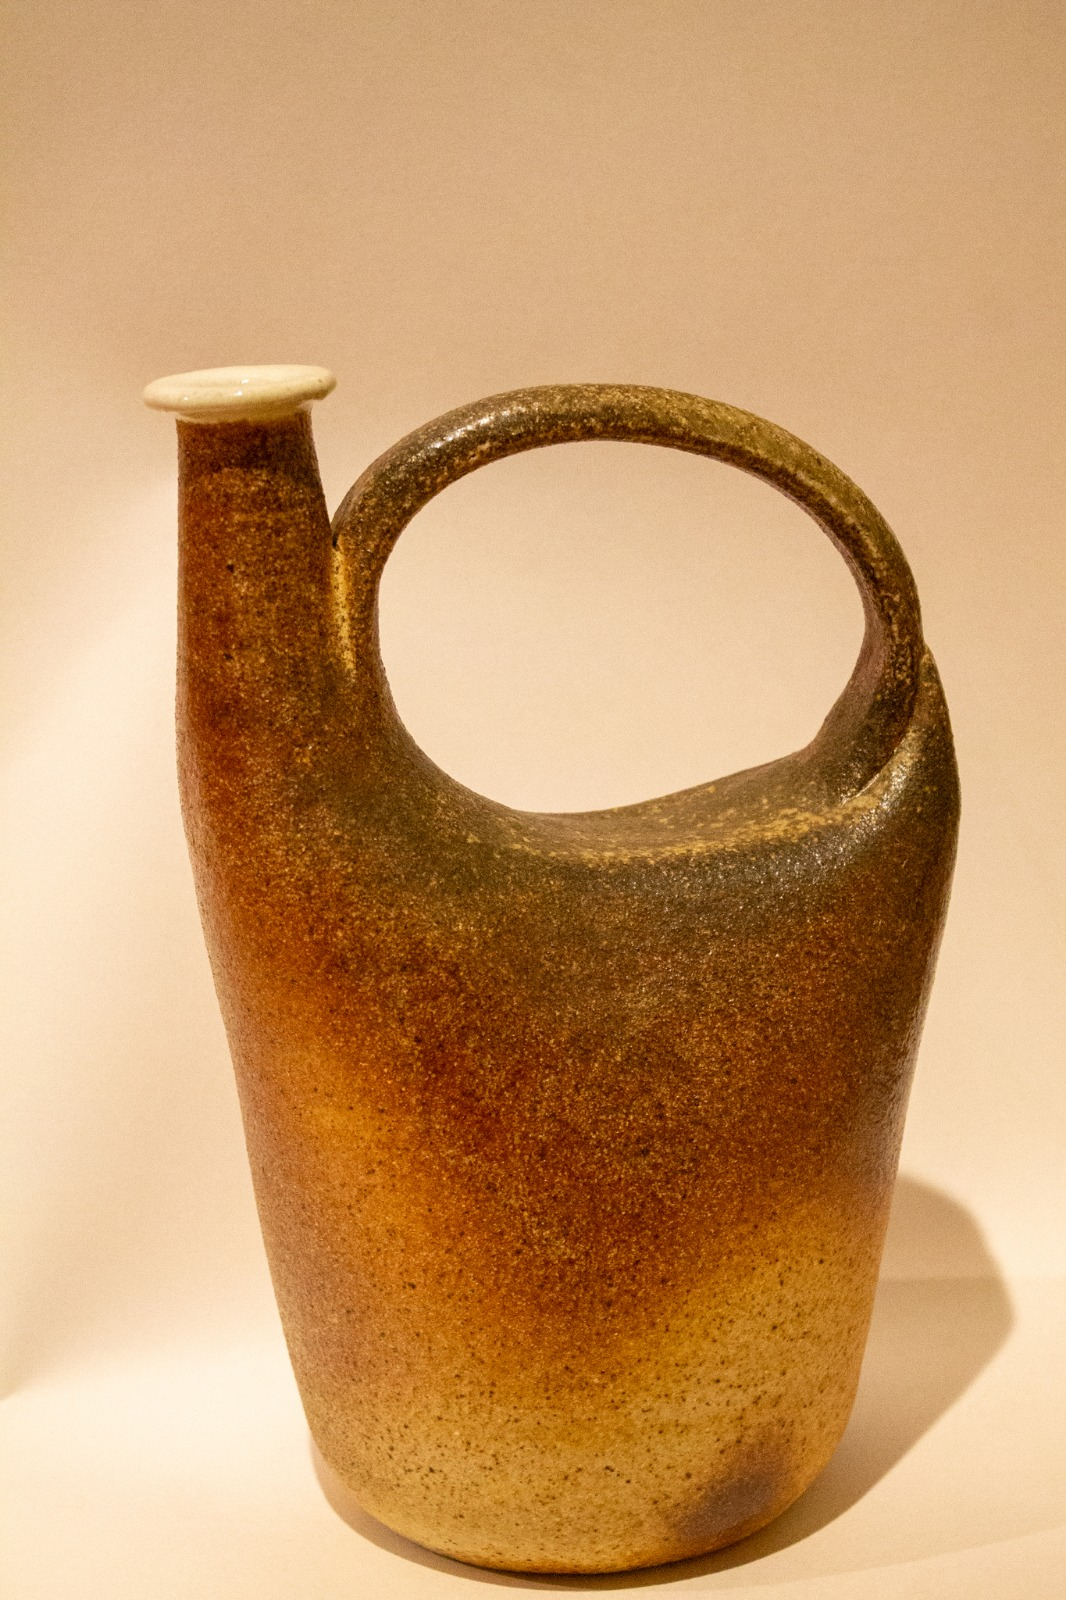 Sara Bachenberg; Stoneware Jug, 2019; Stoneware, Thrown and Altered, Wood Fired; 12 x 8 x 5""